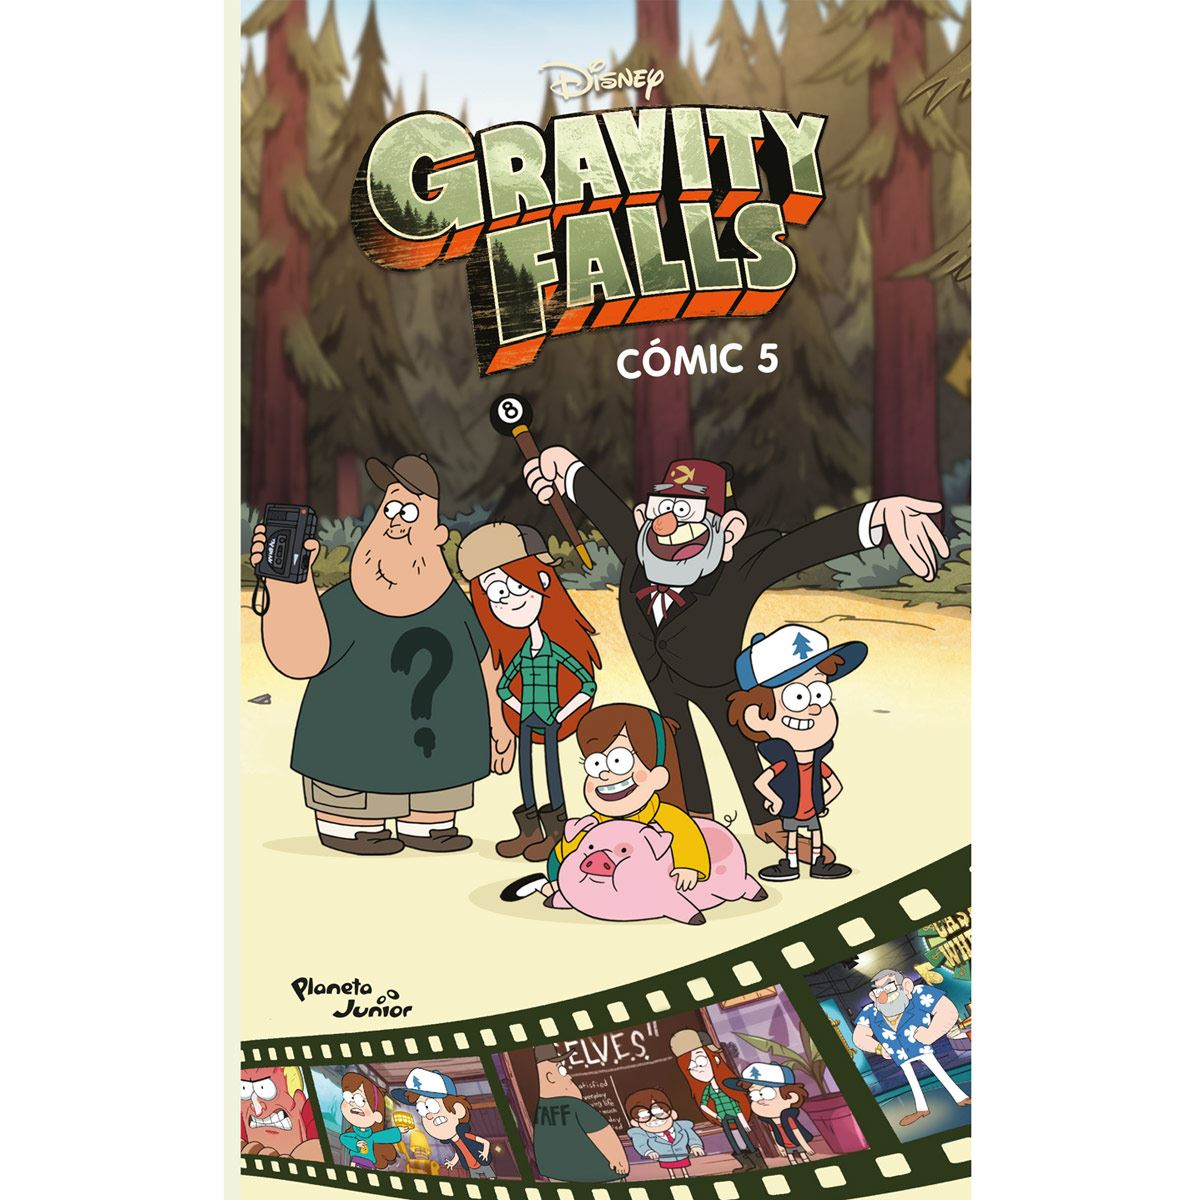 Gravity falls. Cómic 5